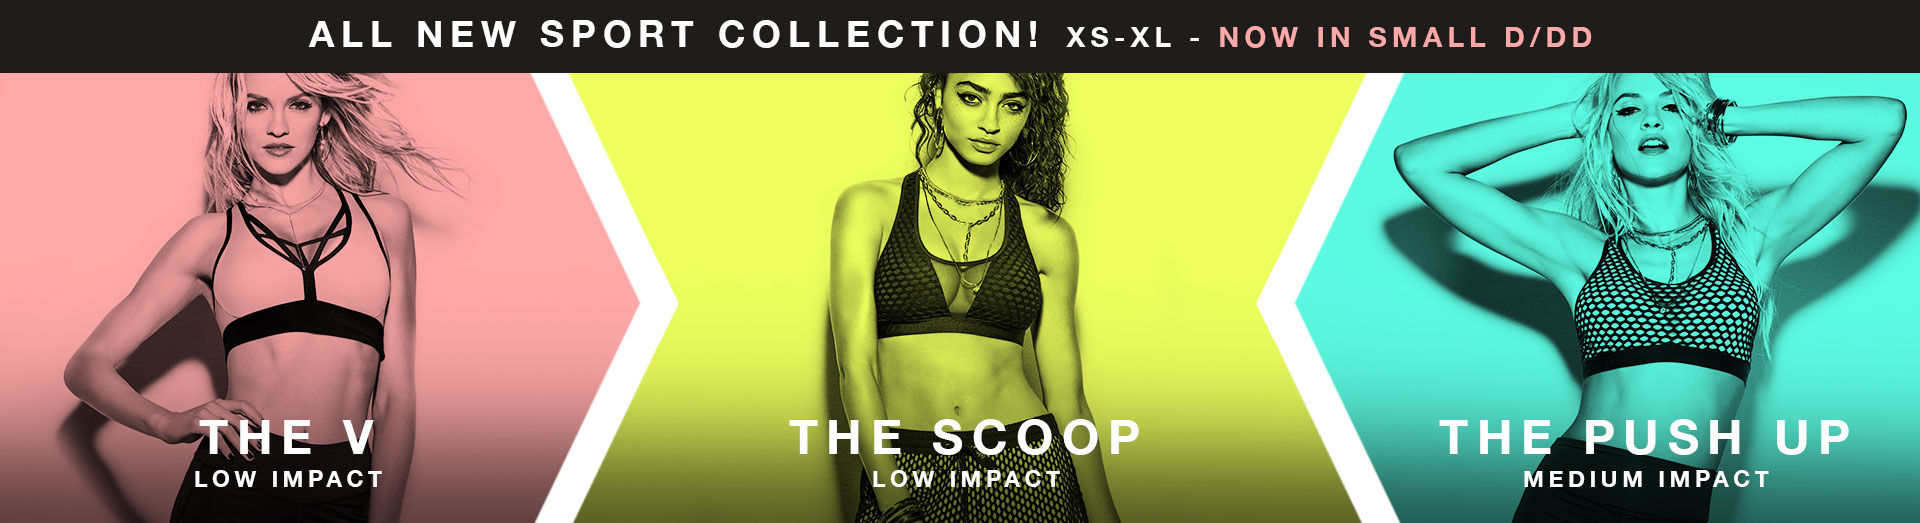 All new sport collection! XS - XL - Now in small D/DD. The V. Low impact. The scoop. Low impact. The push up. Medium impact.